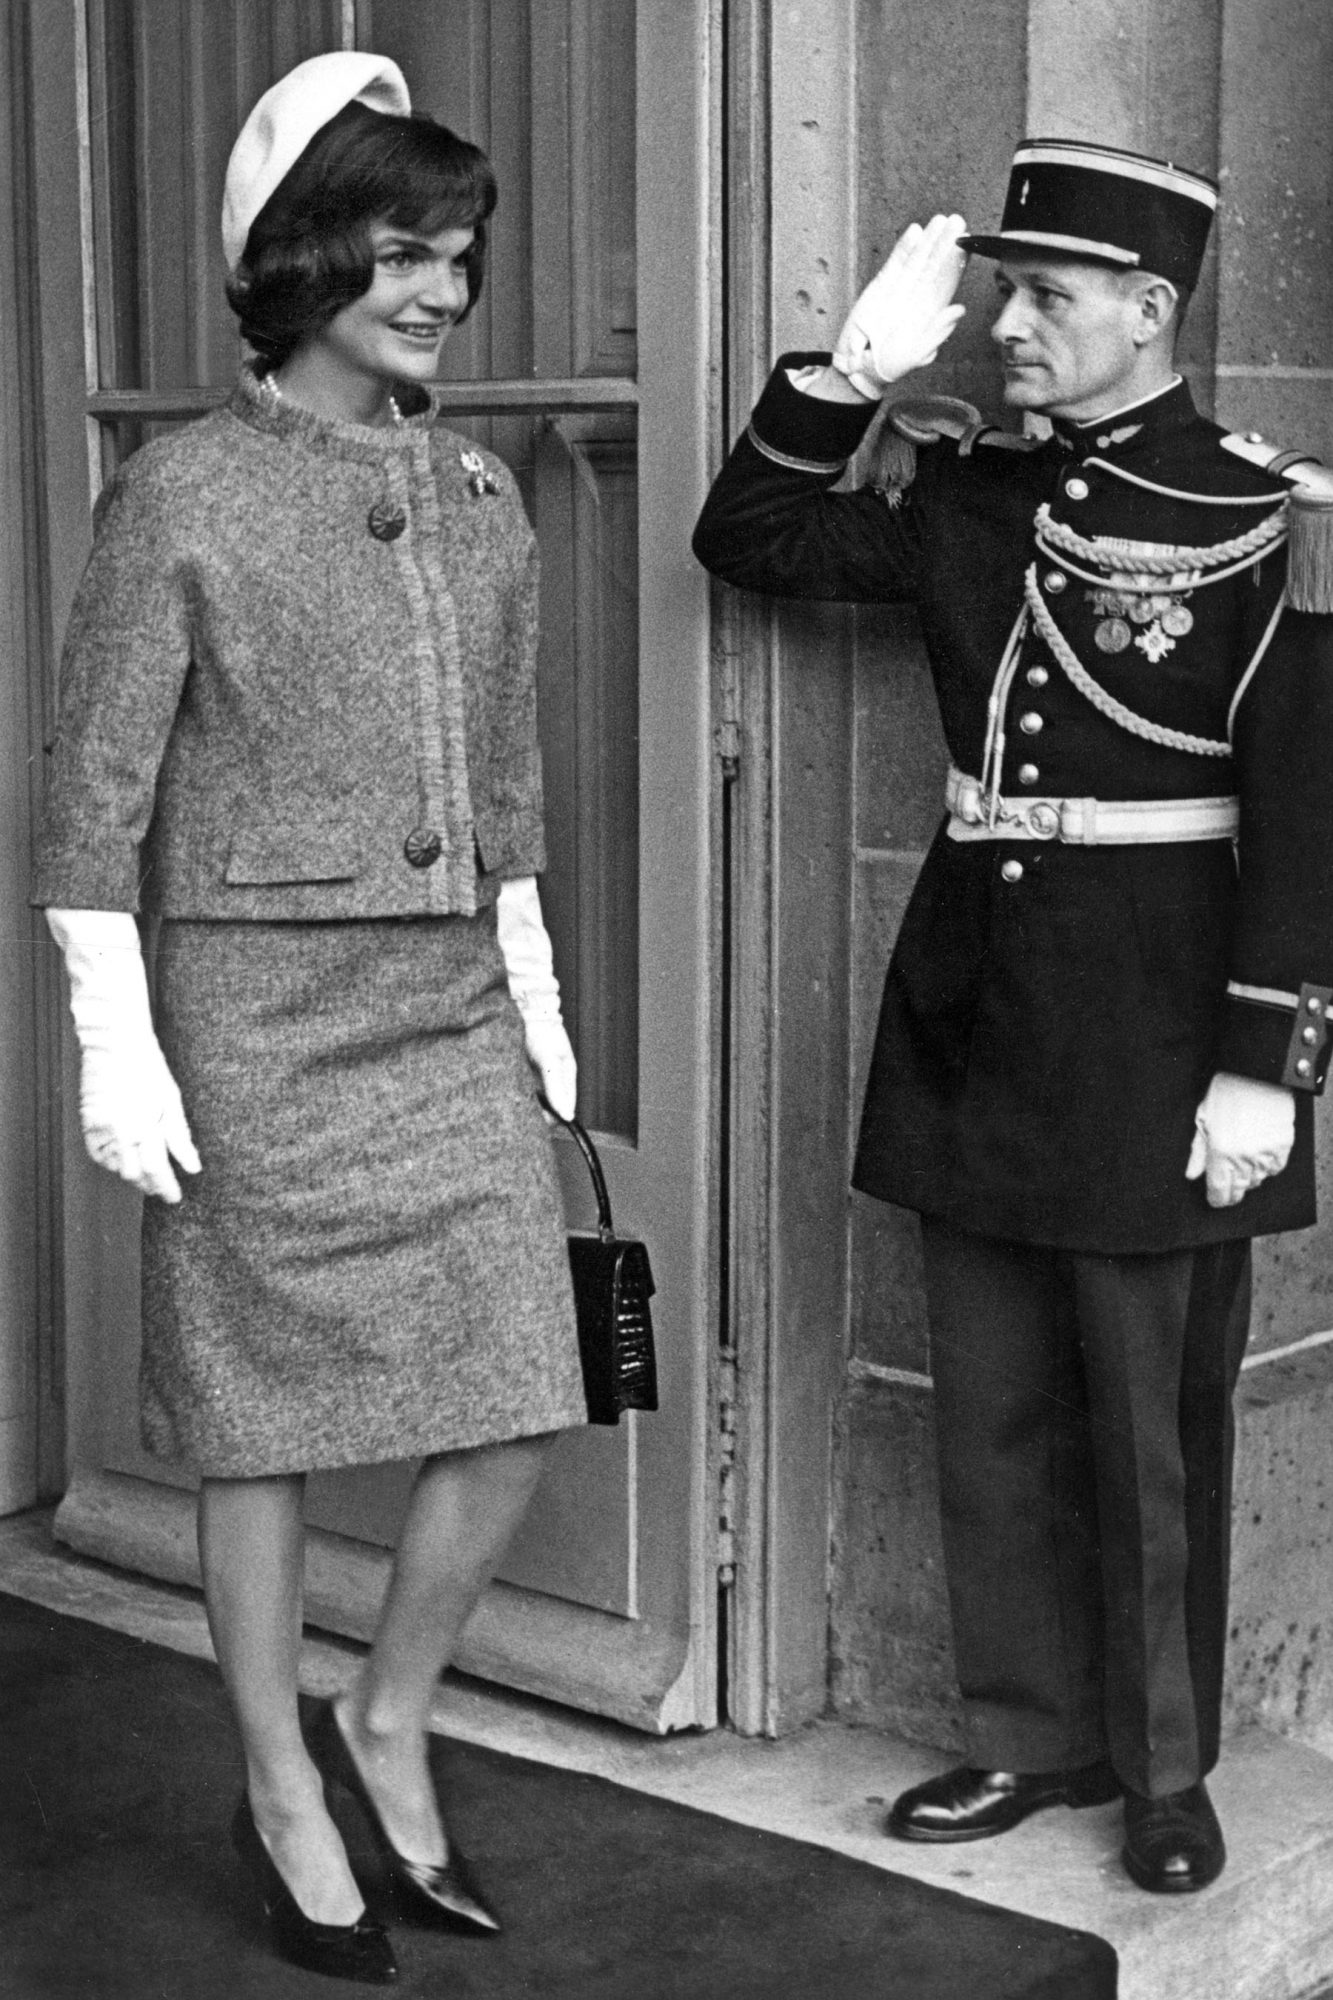 Jackie Kennedy in Paris on june 2, 1961 (wearing tweed suit by Hubert de Givenchy for Ninon, hat by